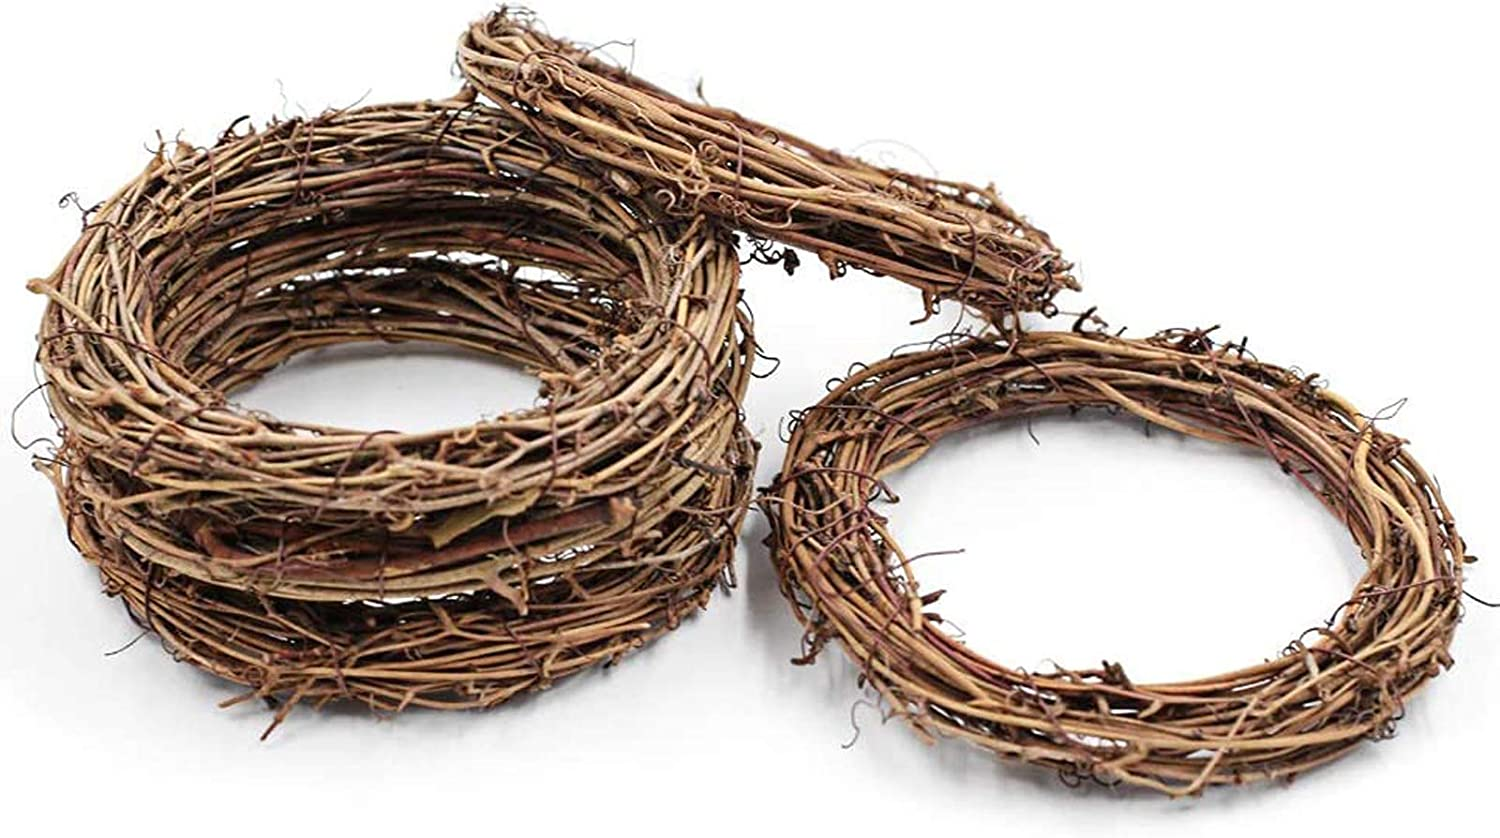 aoory Natural Rattan Wreath Grapevine Wreath Base DIY Crafts for Wedding Party Door Garland Home Hanging Decor 6Pcs